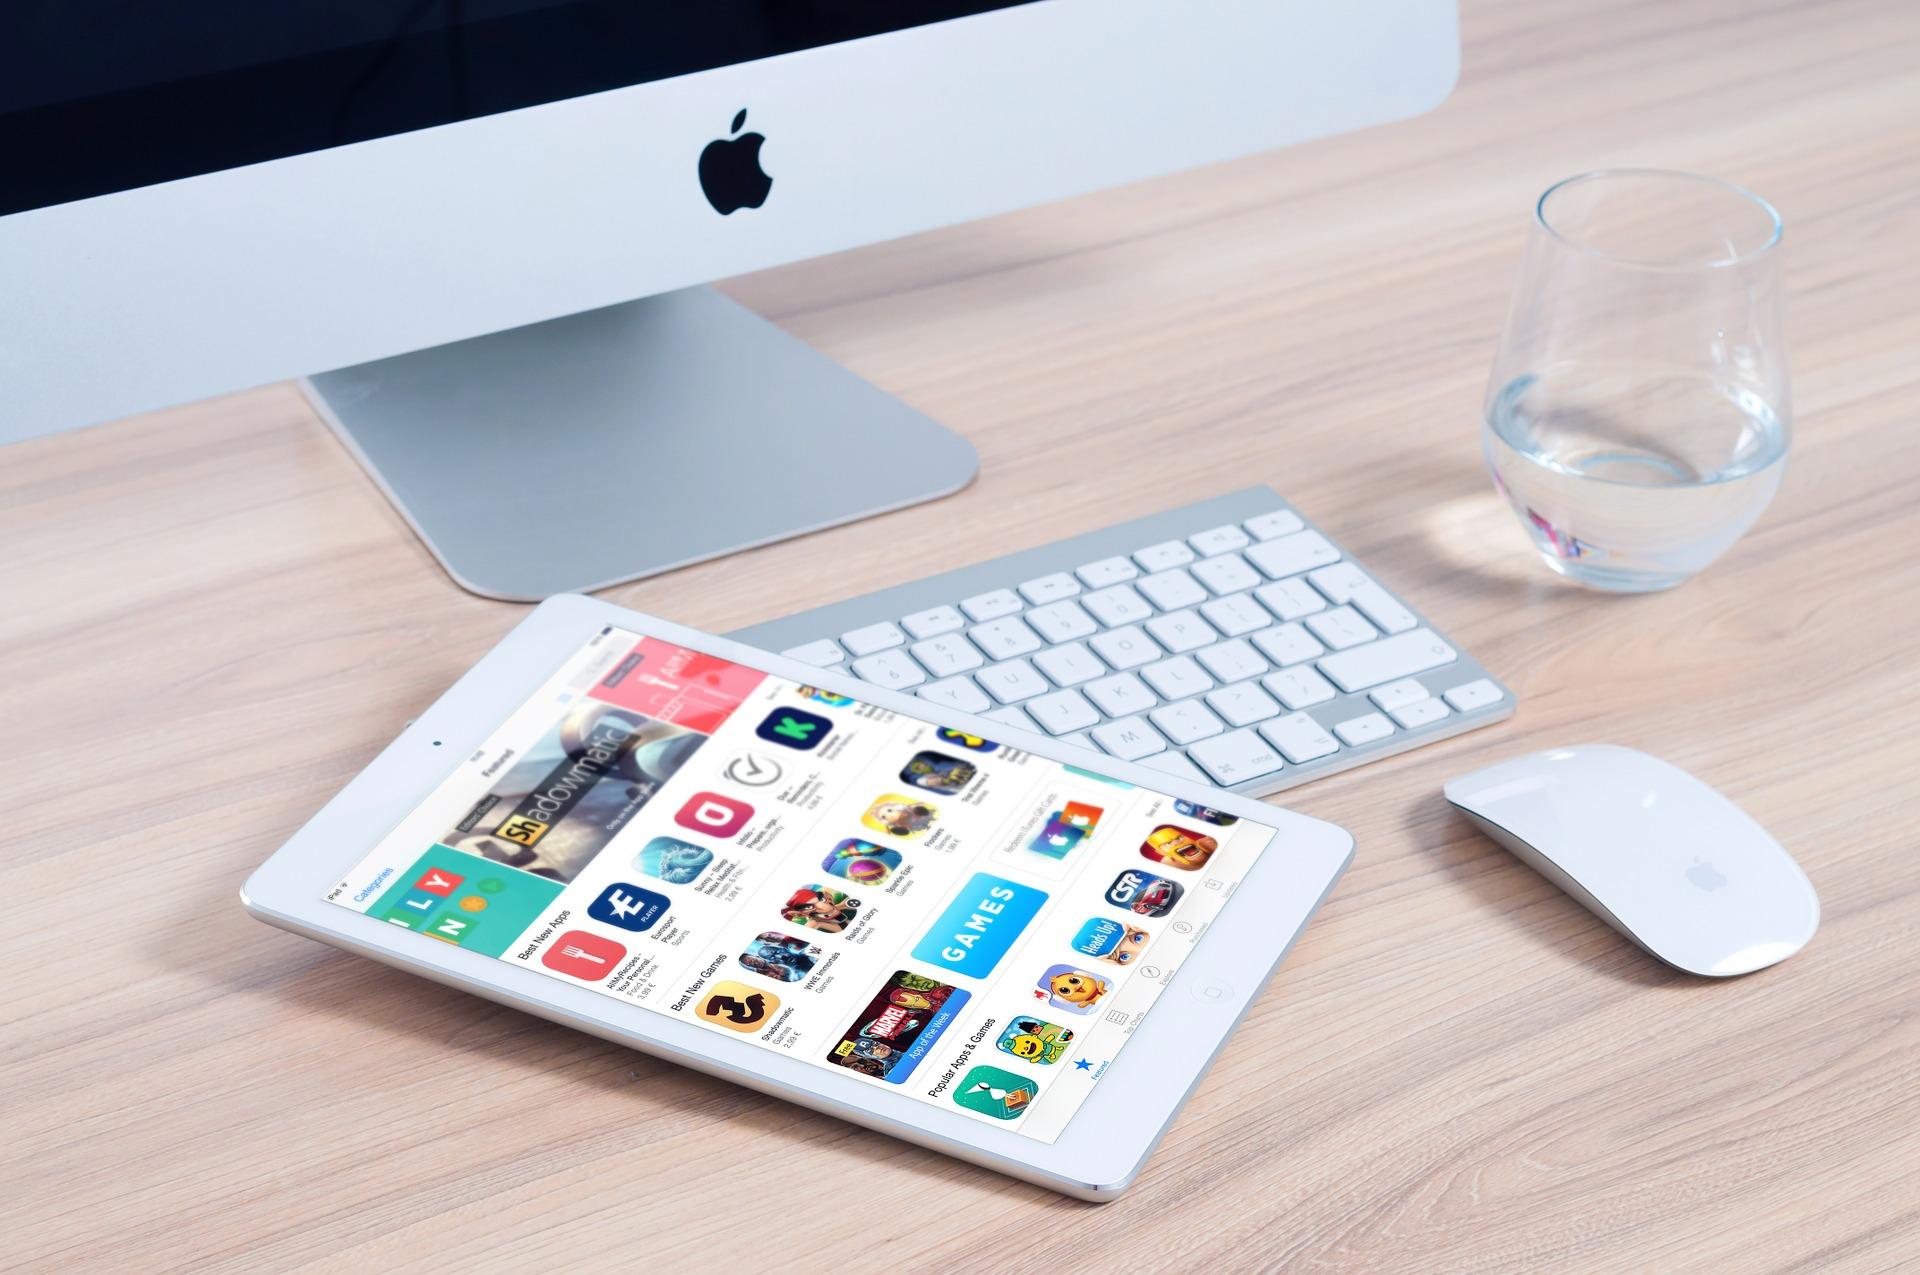 Mobile Shopping Apps with Designs That Inspire